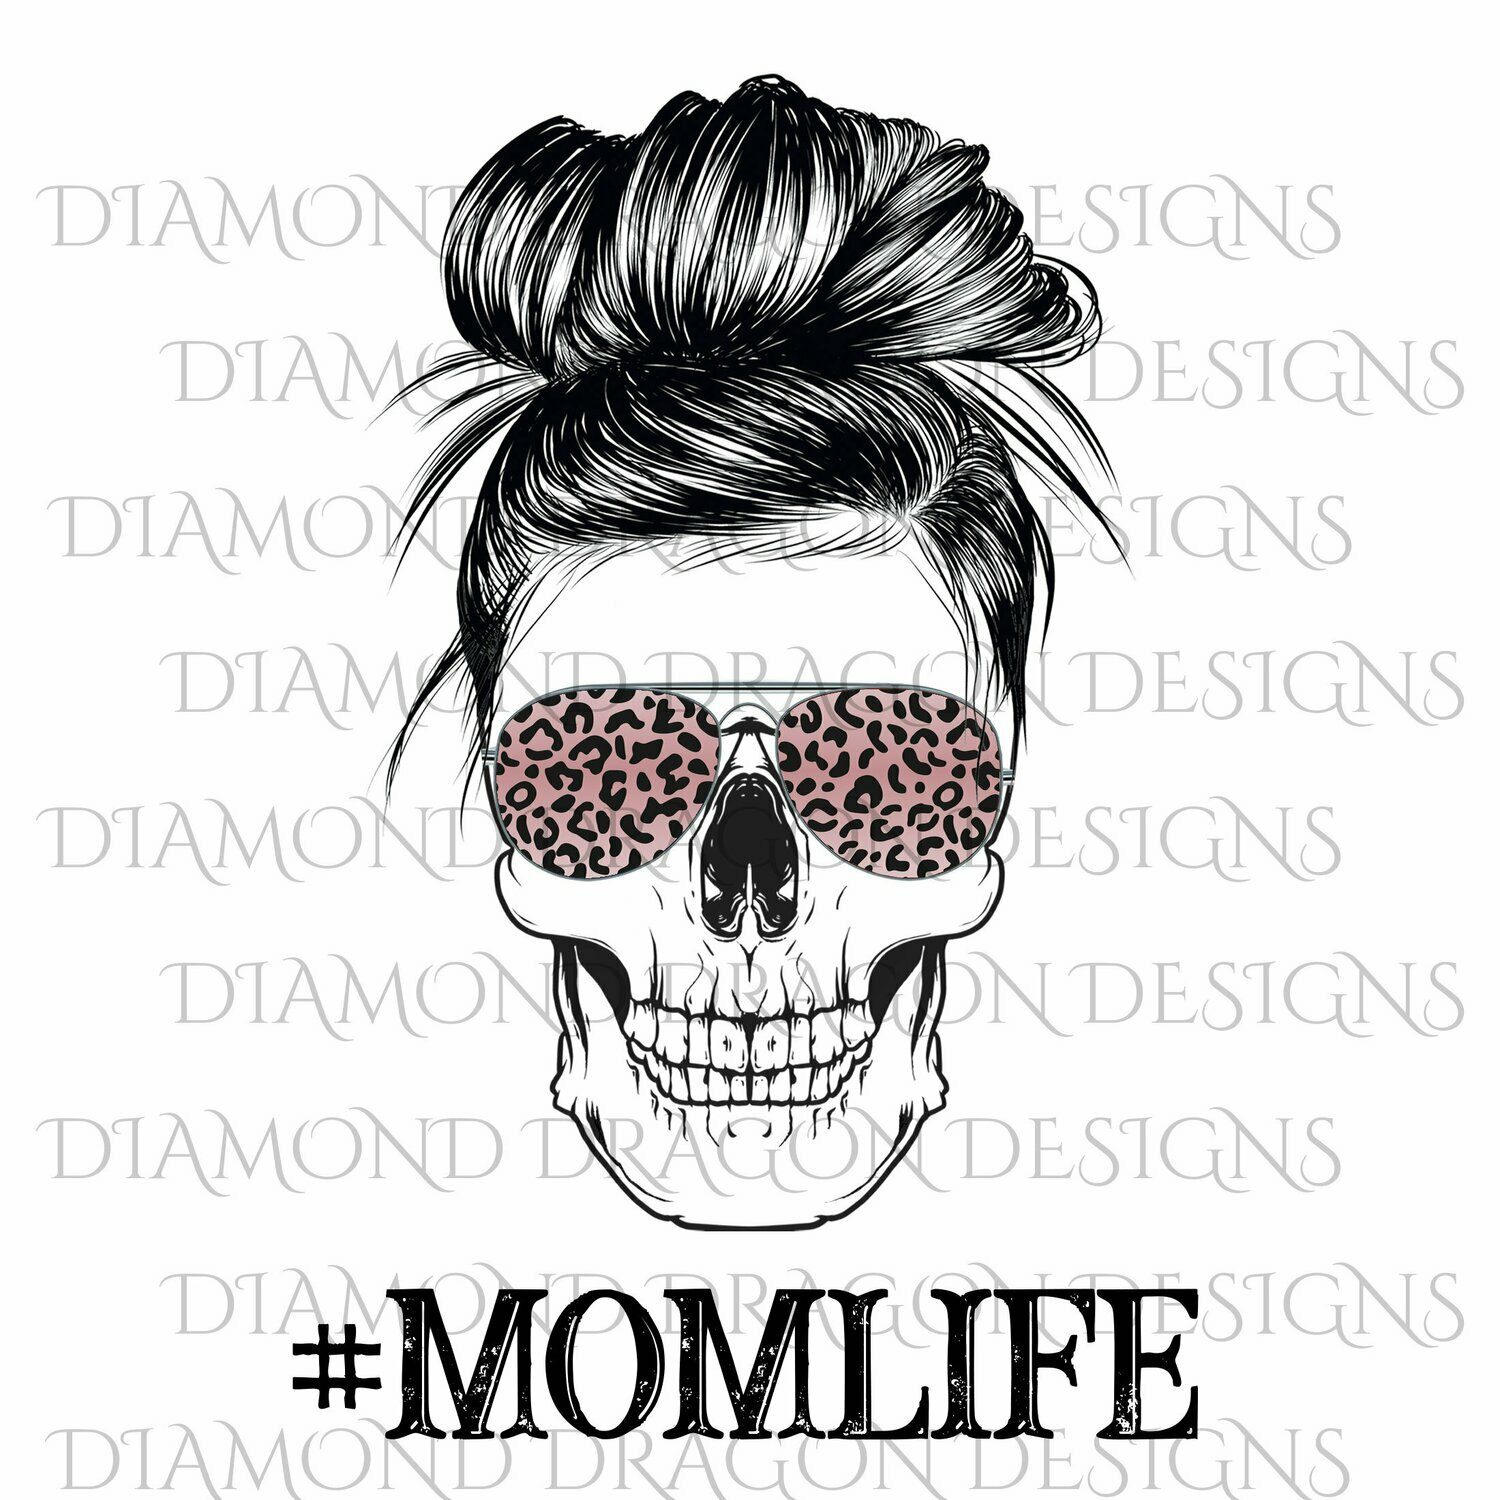 Skulls - Mom Life, #momlife, Skull, Messy Bun, Sunglasses, Leopard Print, Mom Skull, Digital Image